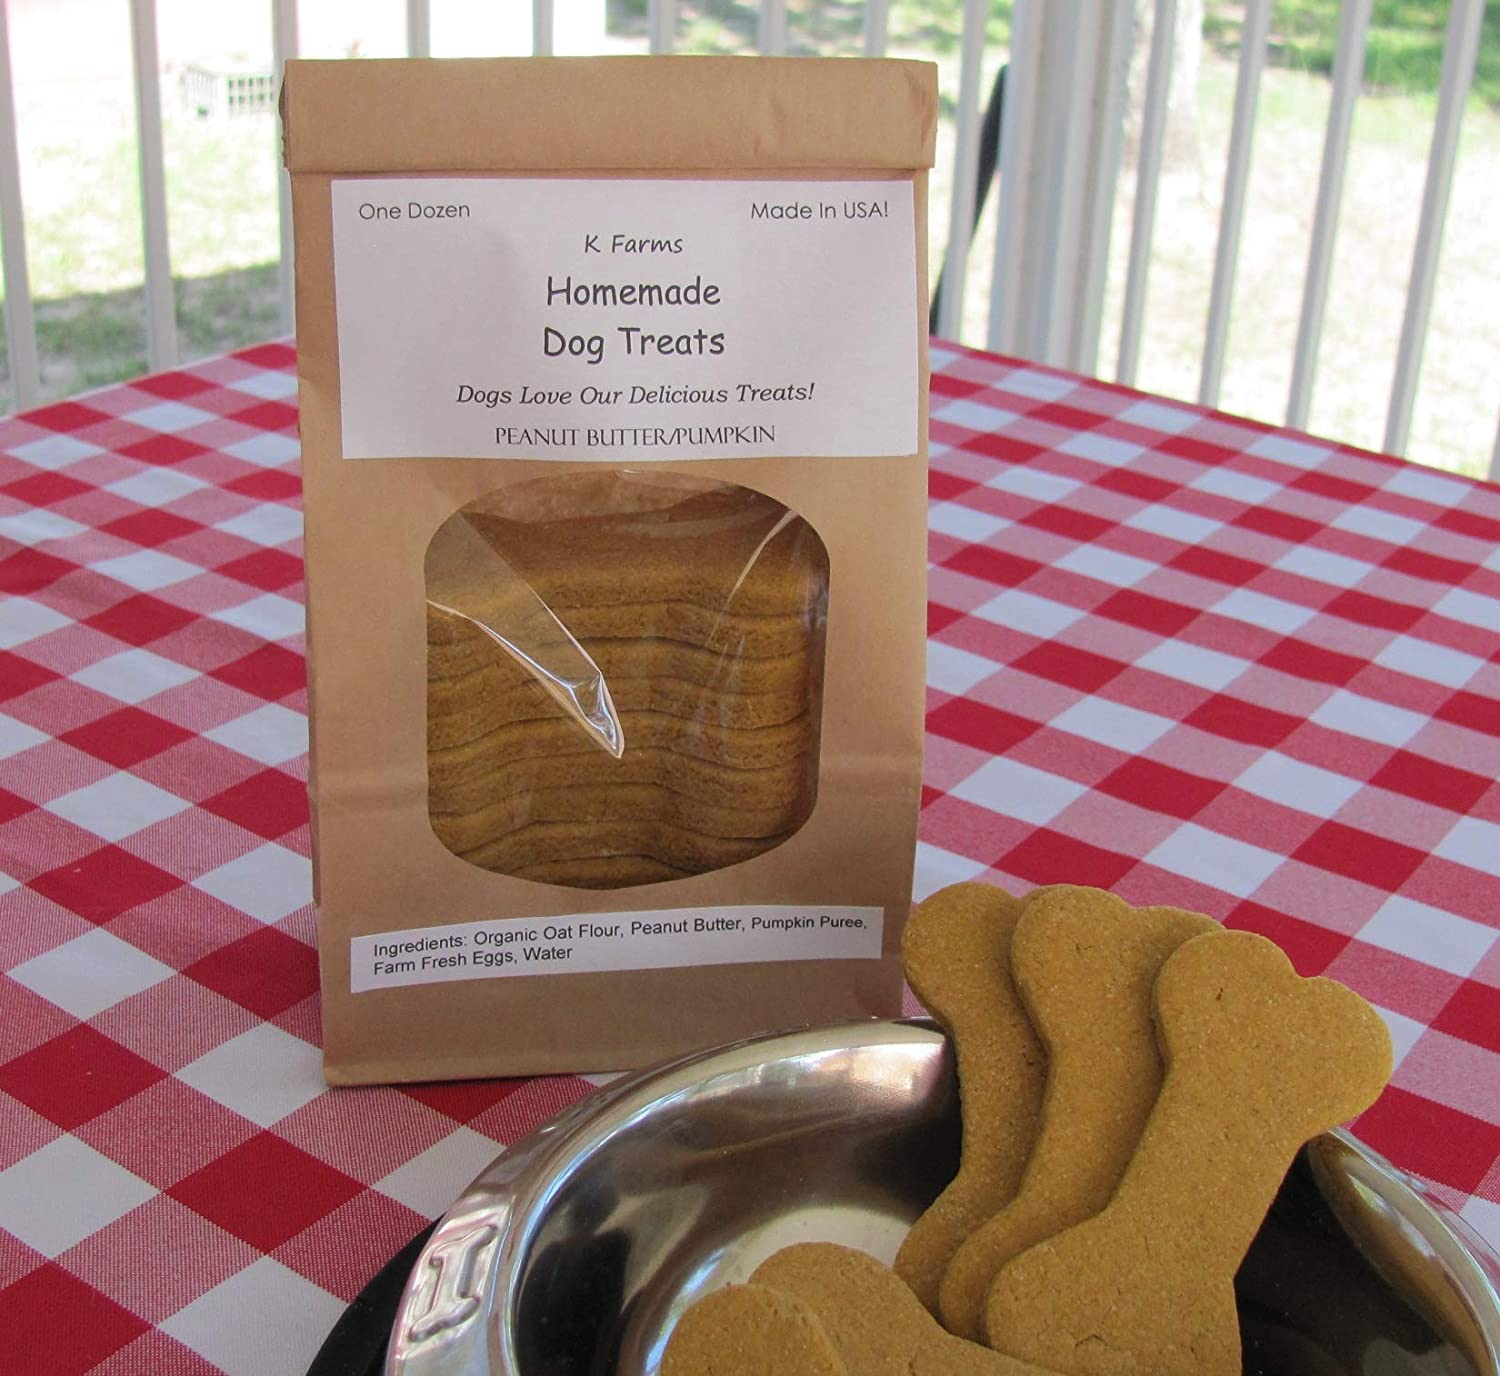 Healthy Hypoallergenic Peanut Butter and Pumpkin Dog Treats, Made in USA